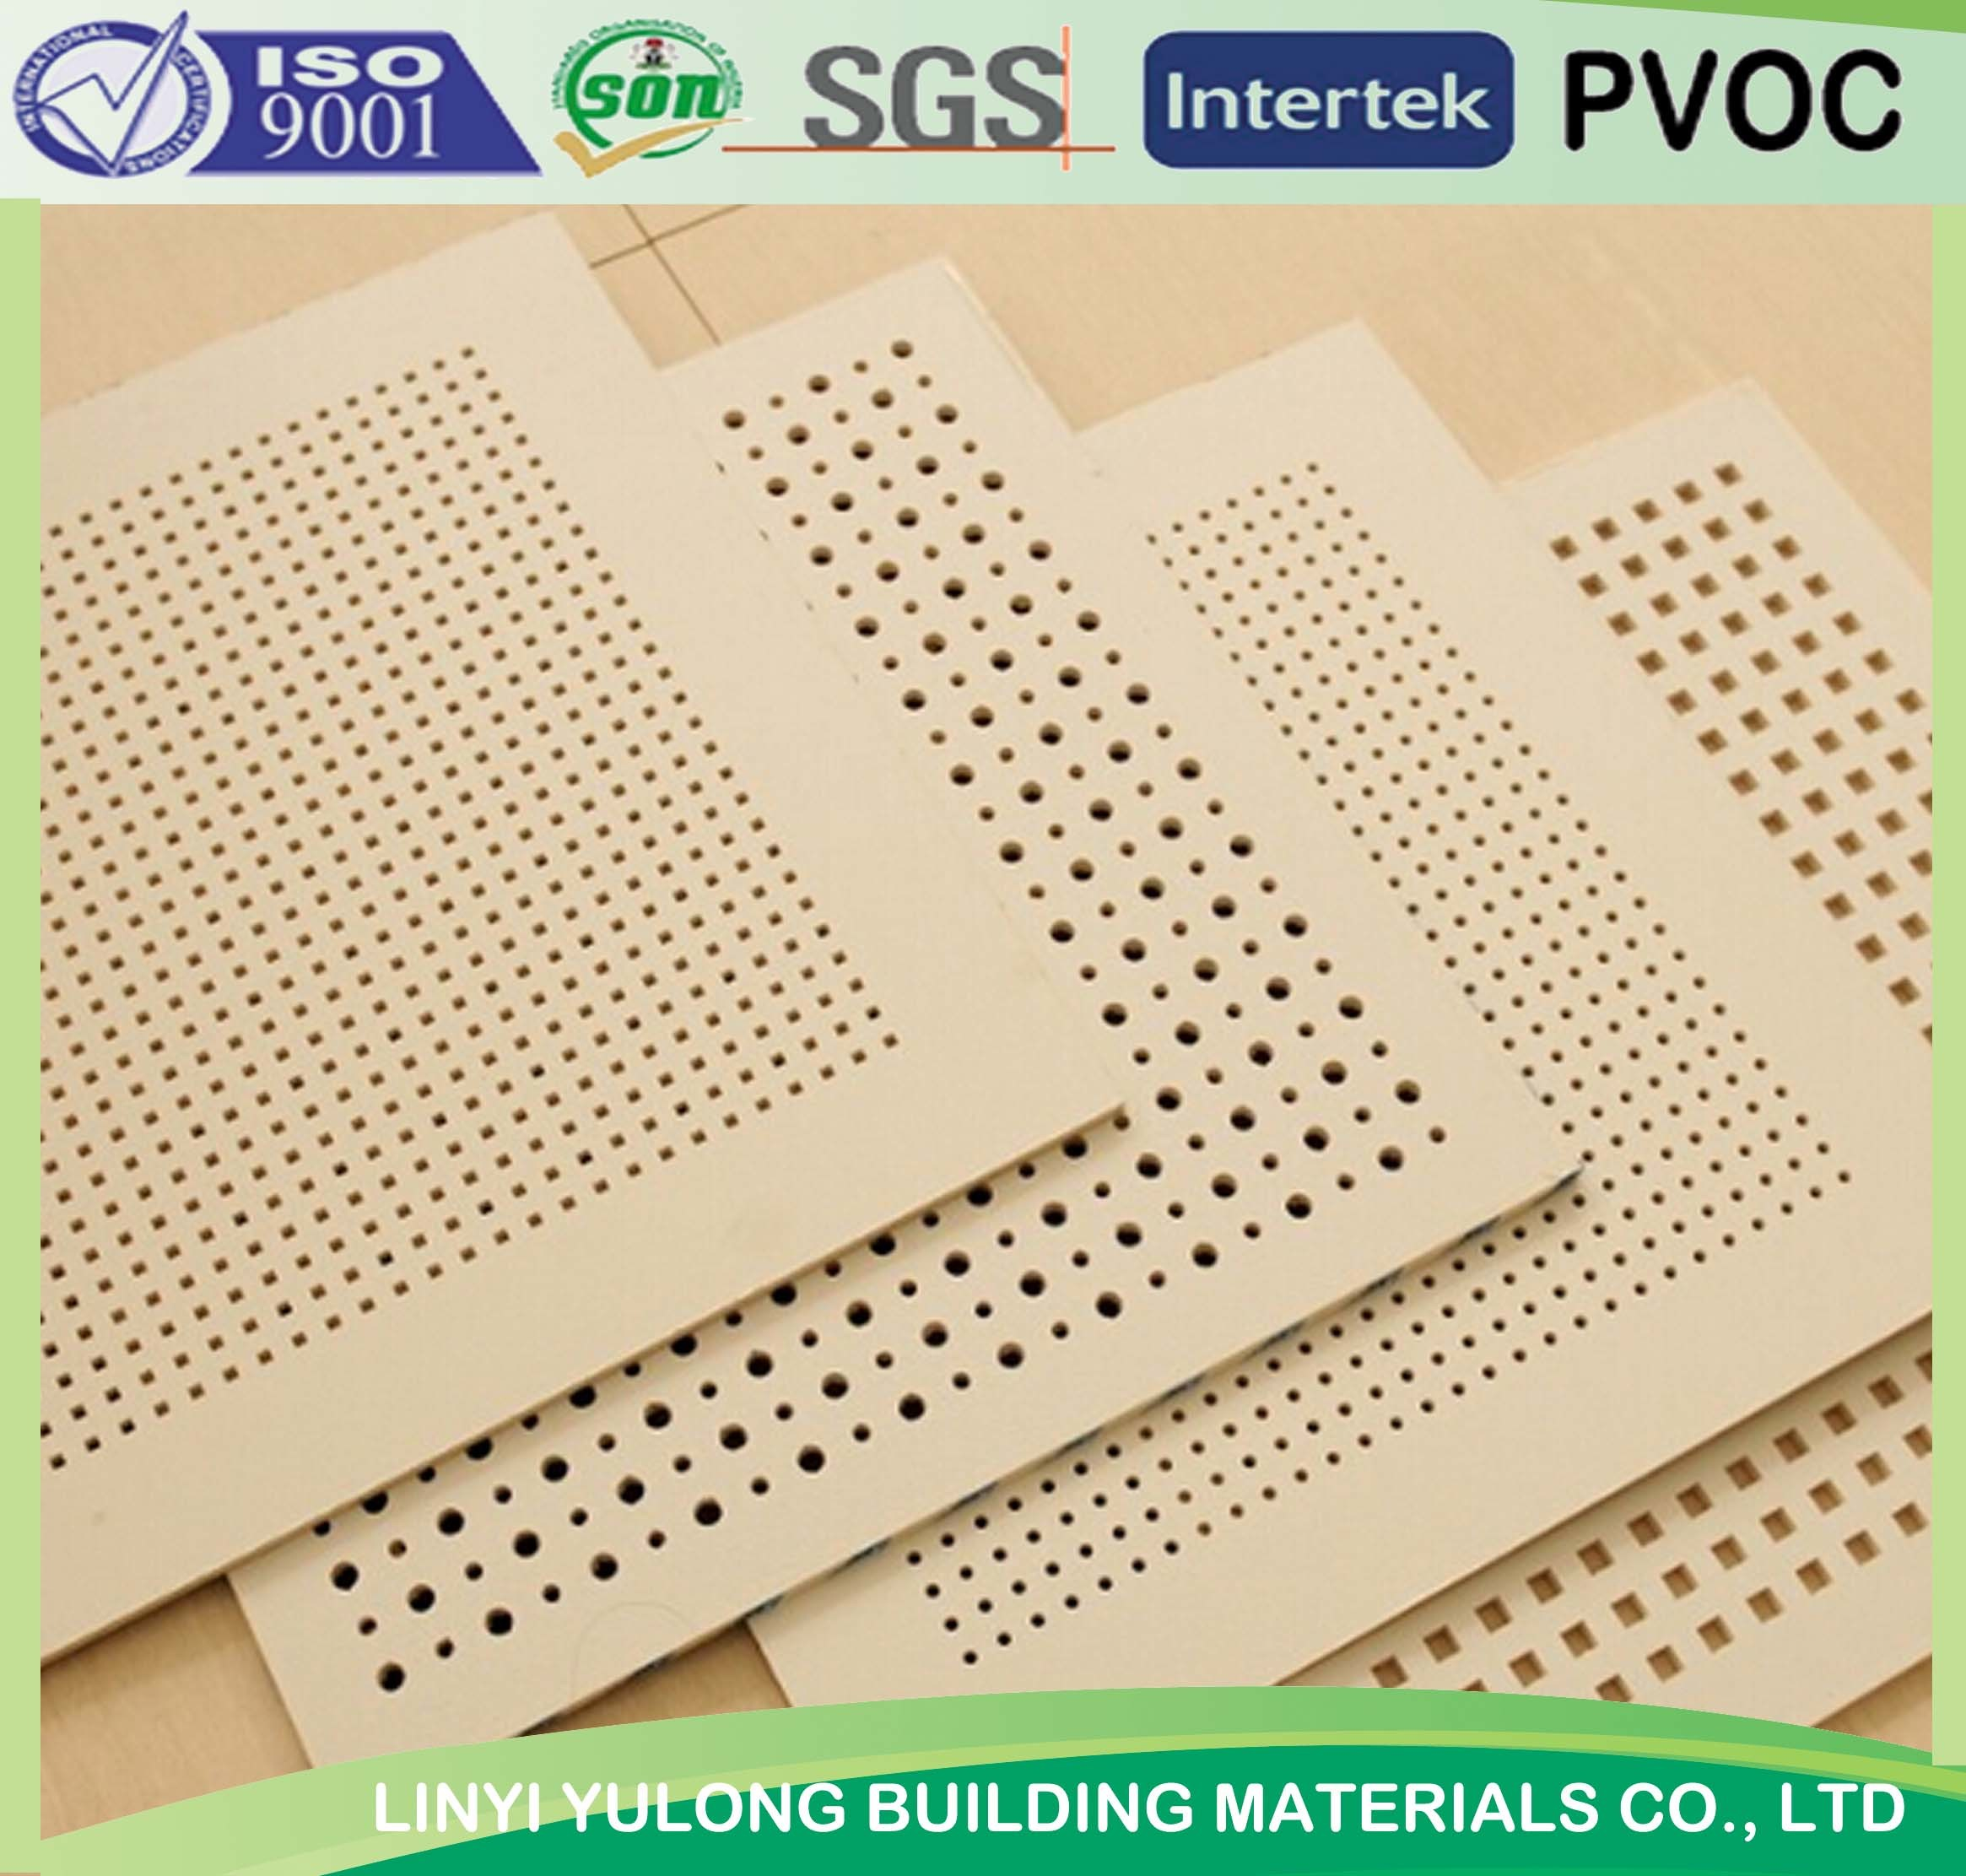 Pvc laminated gypsum ceiling tiles hs code integralbook china acoustic sound absorb perforated pvc gypsum ceiling tiles dailygadgetfo Image collections